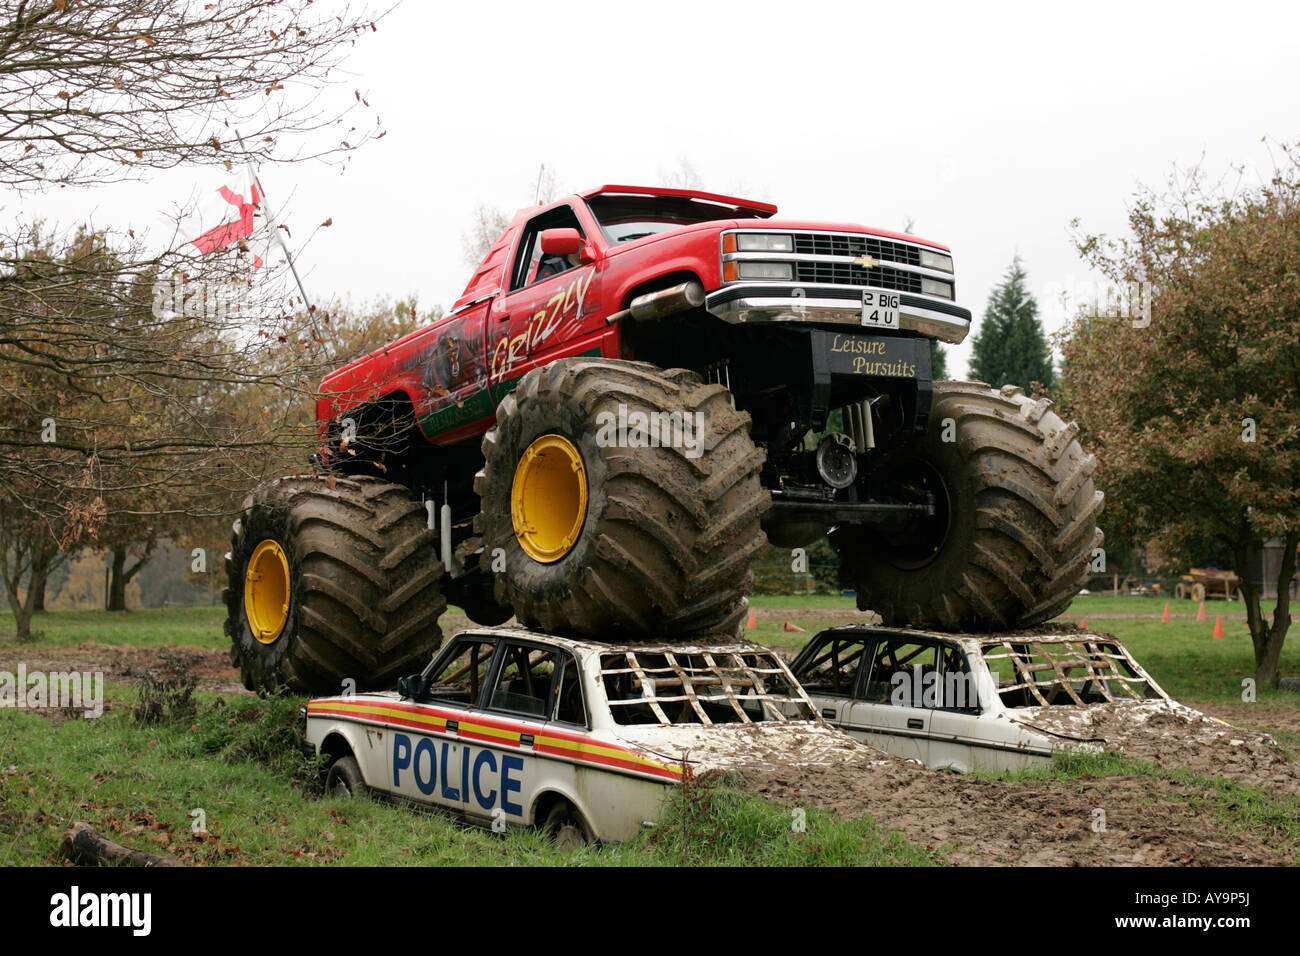 Monster Truck Crushing Police Cars Stock Photo Royalty Free Image